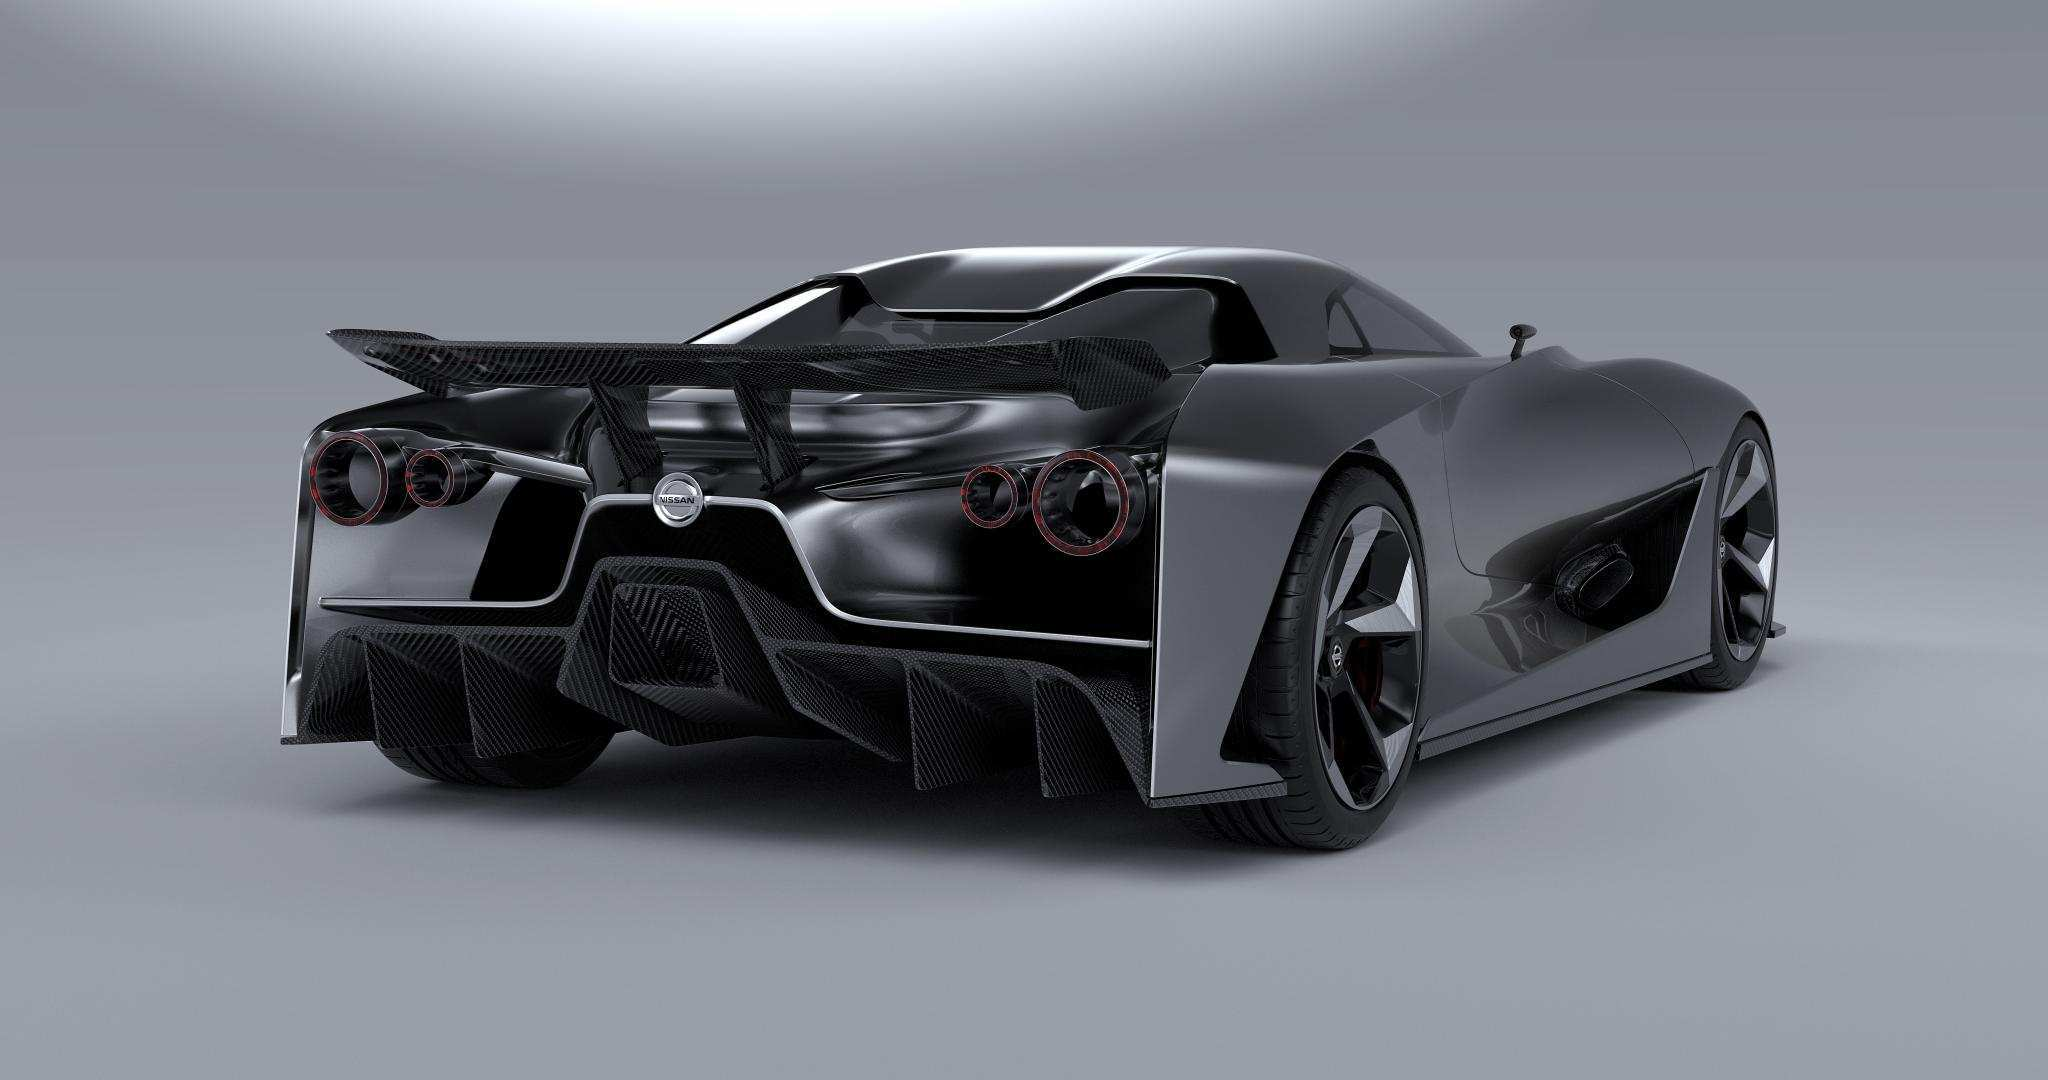 52 Gallery of Nissan Gtr R36 Concept 2020 Picture with Nissan Gtr R36 Concept 2020